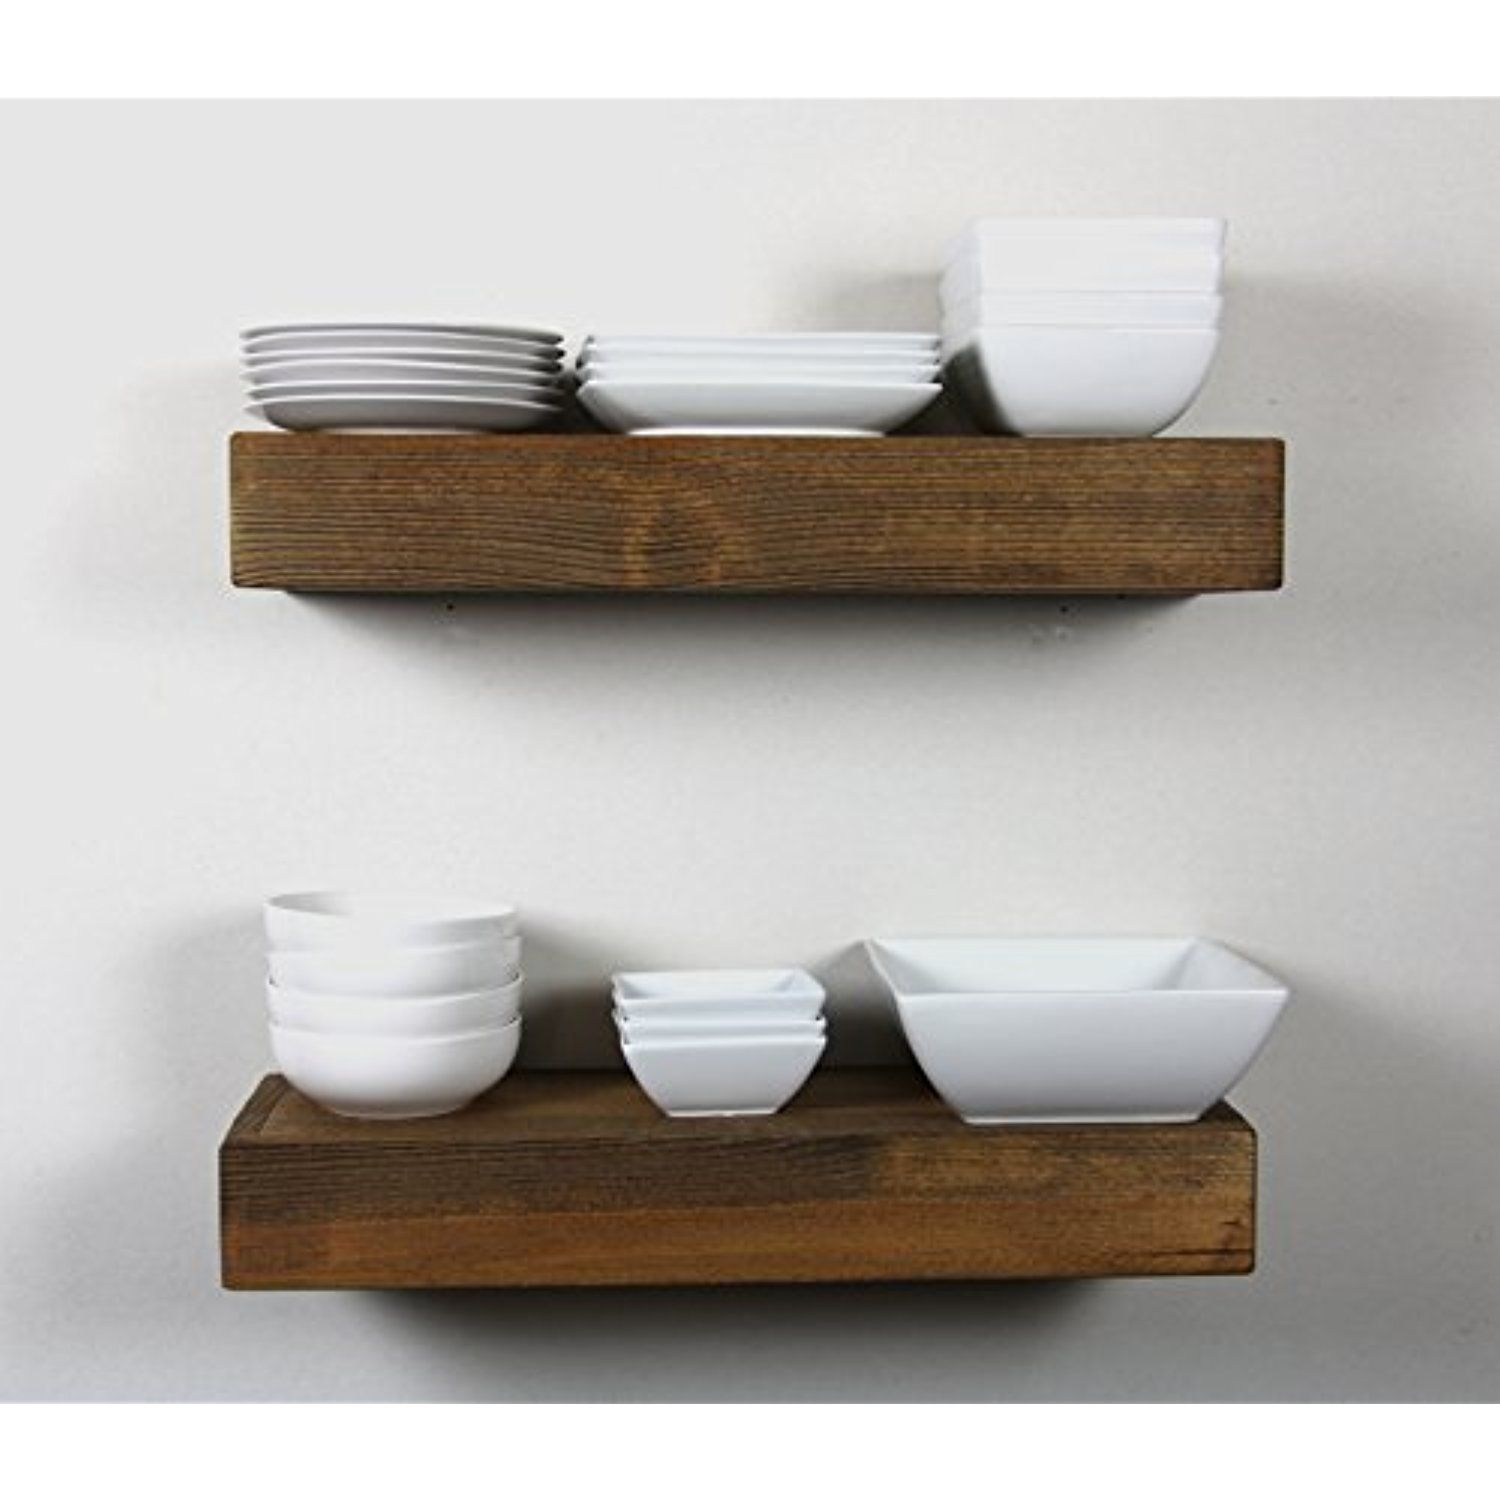 Solid Rustics Handmade Rustic Modern Wooden Floating Wall Shelves Thick Edge Ledge She Wood Wall Shelf Walnut Floating Shelves Floating Shelves Diy